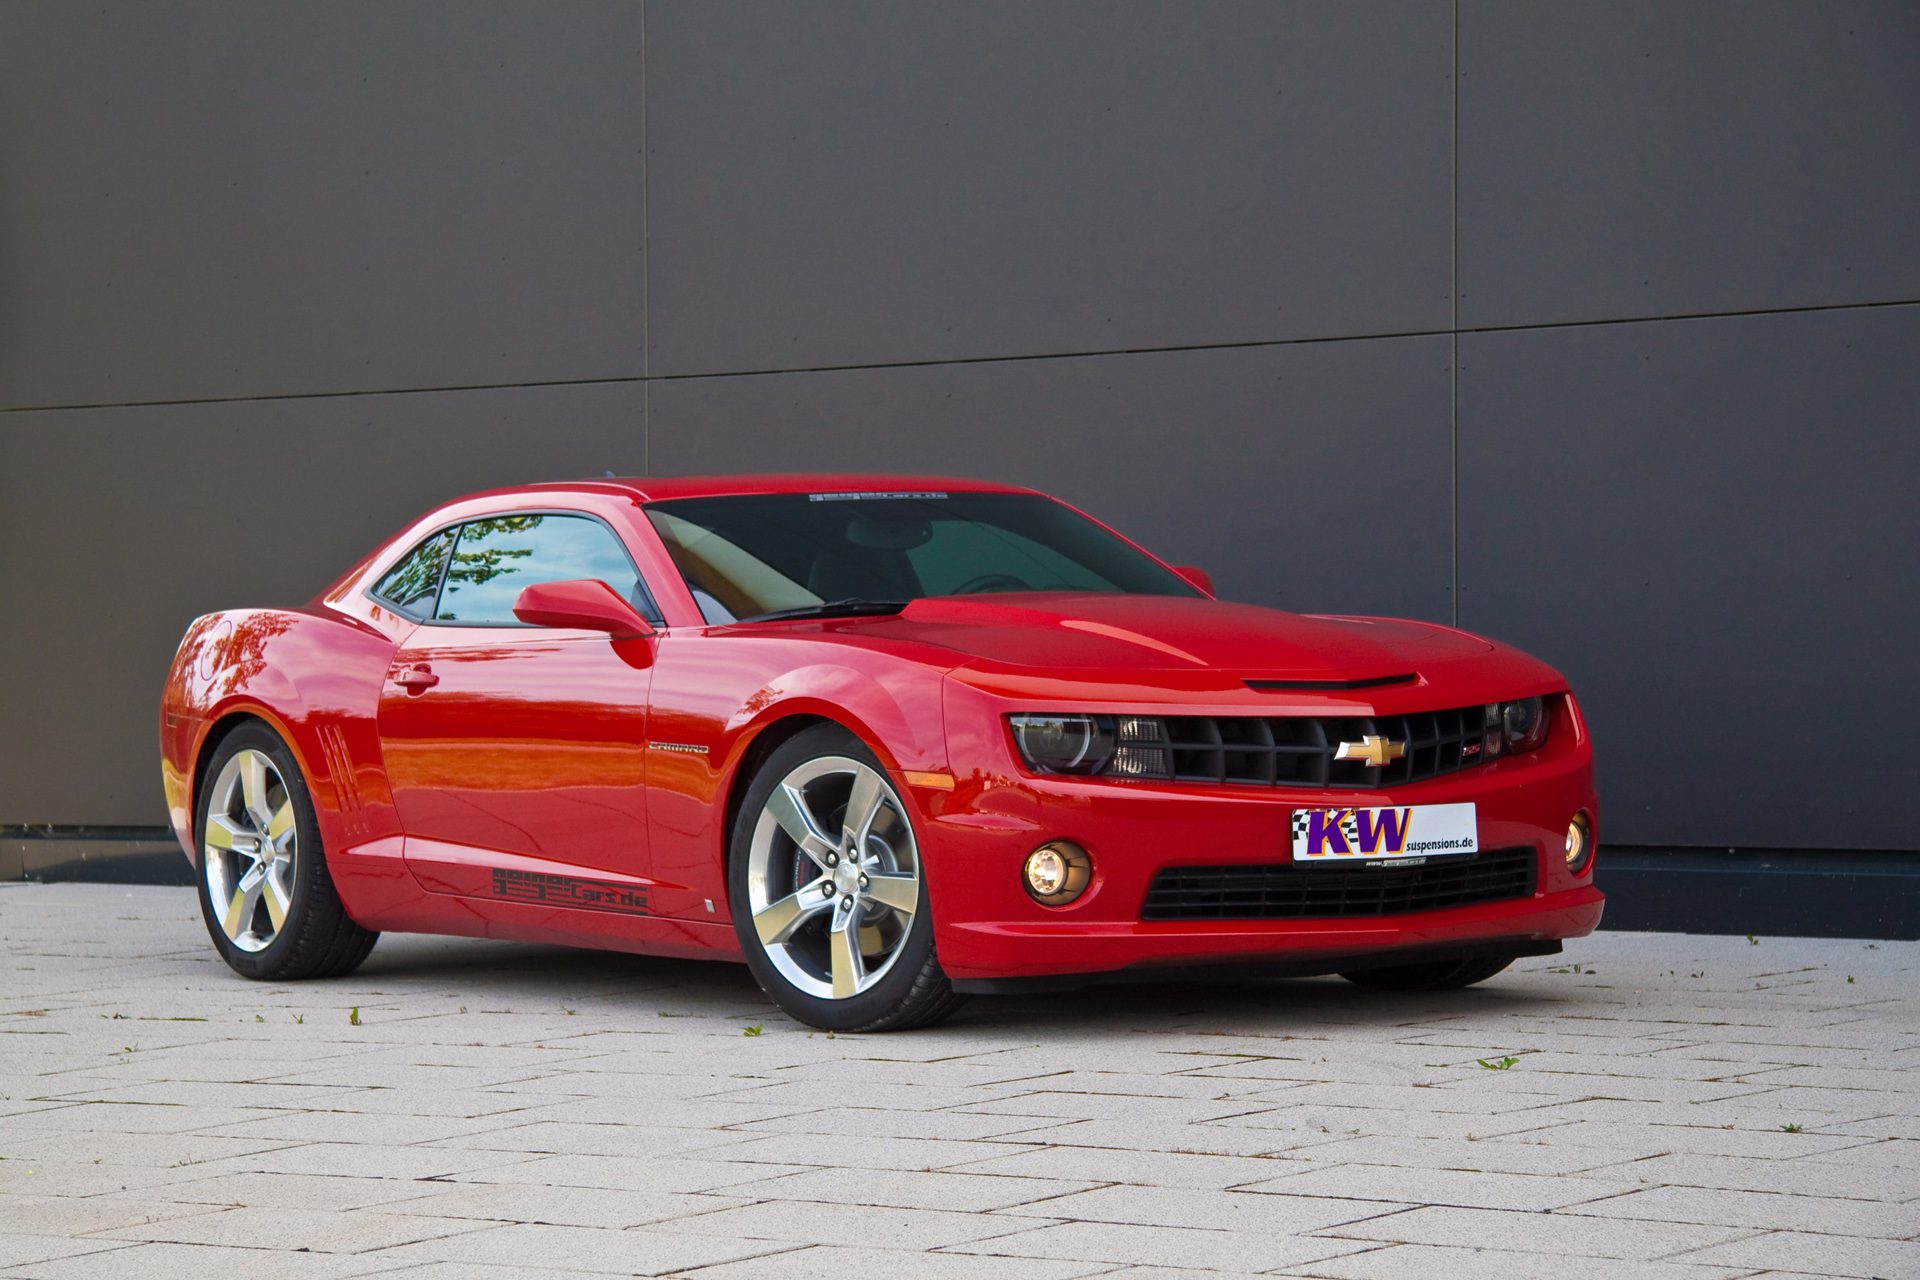 KW automotive Chevrolet Camaro SS photo 69134